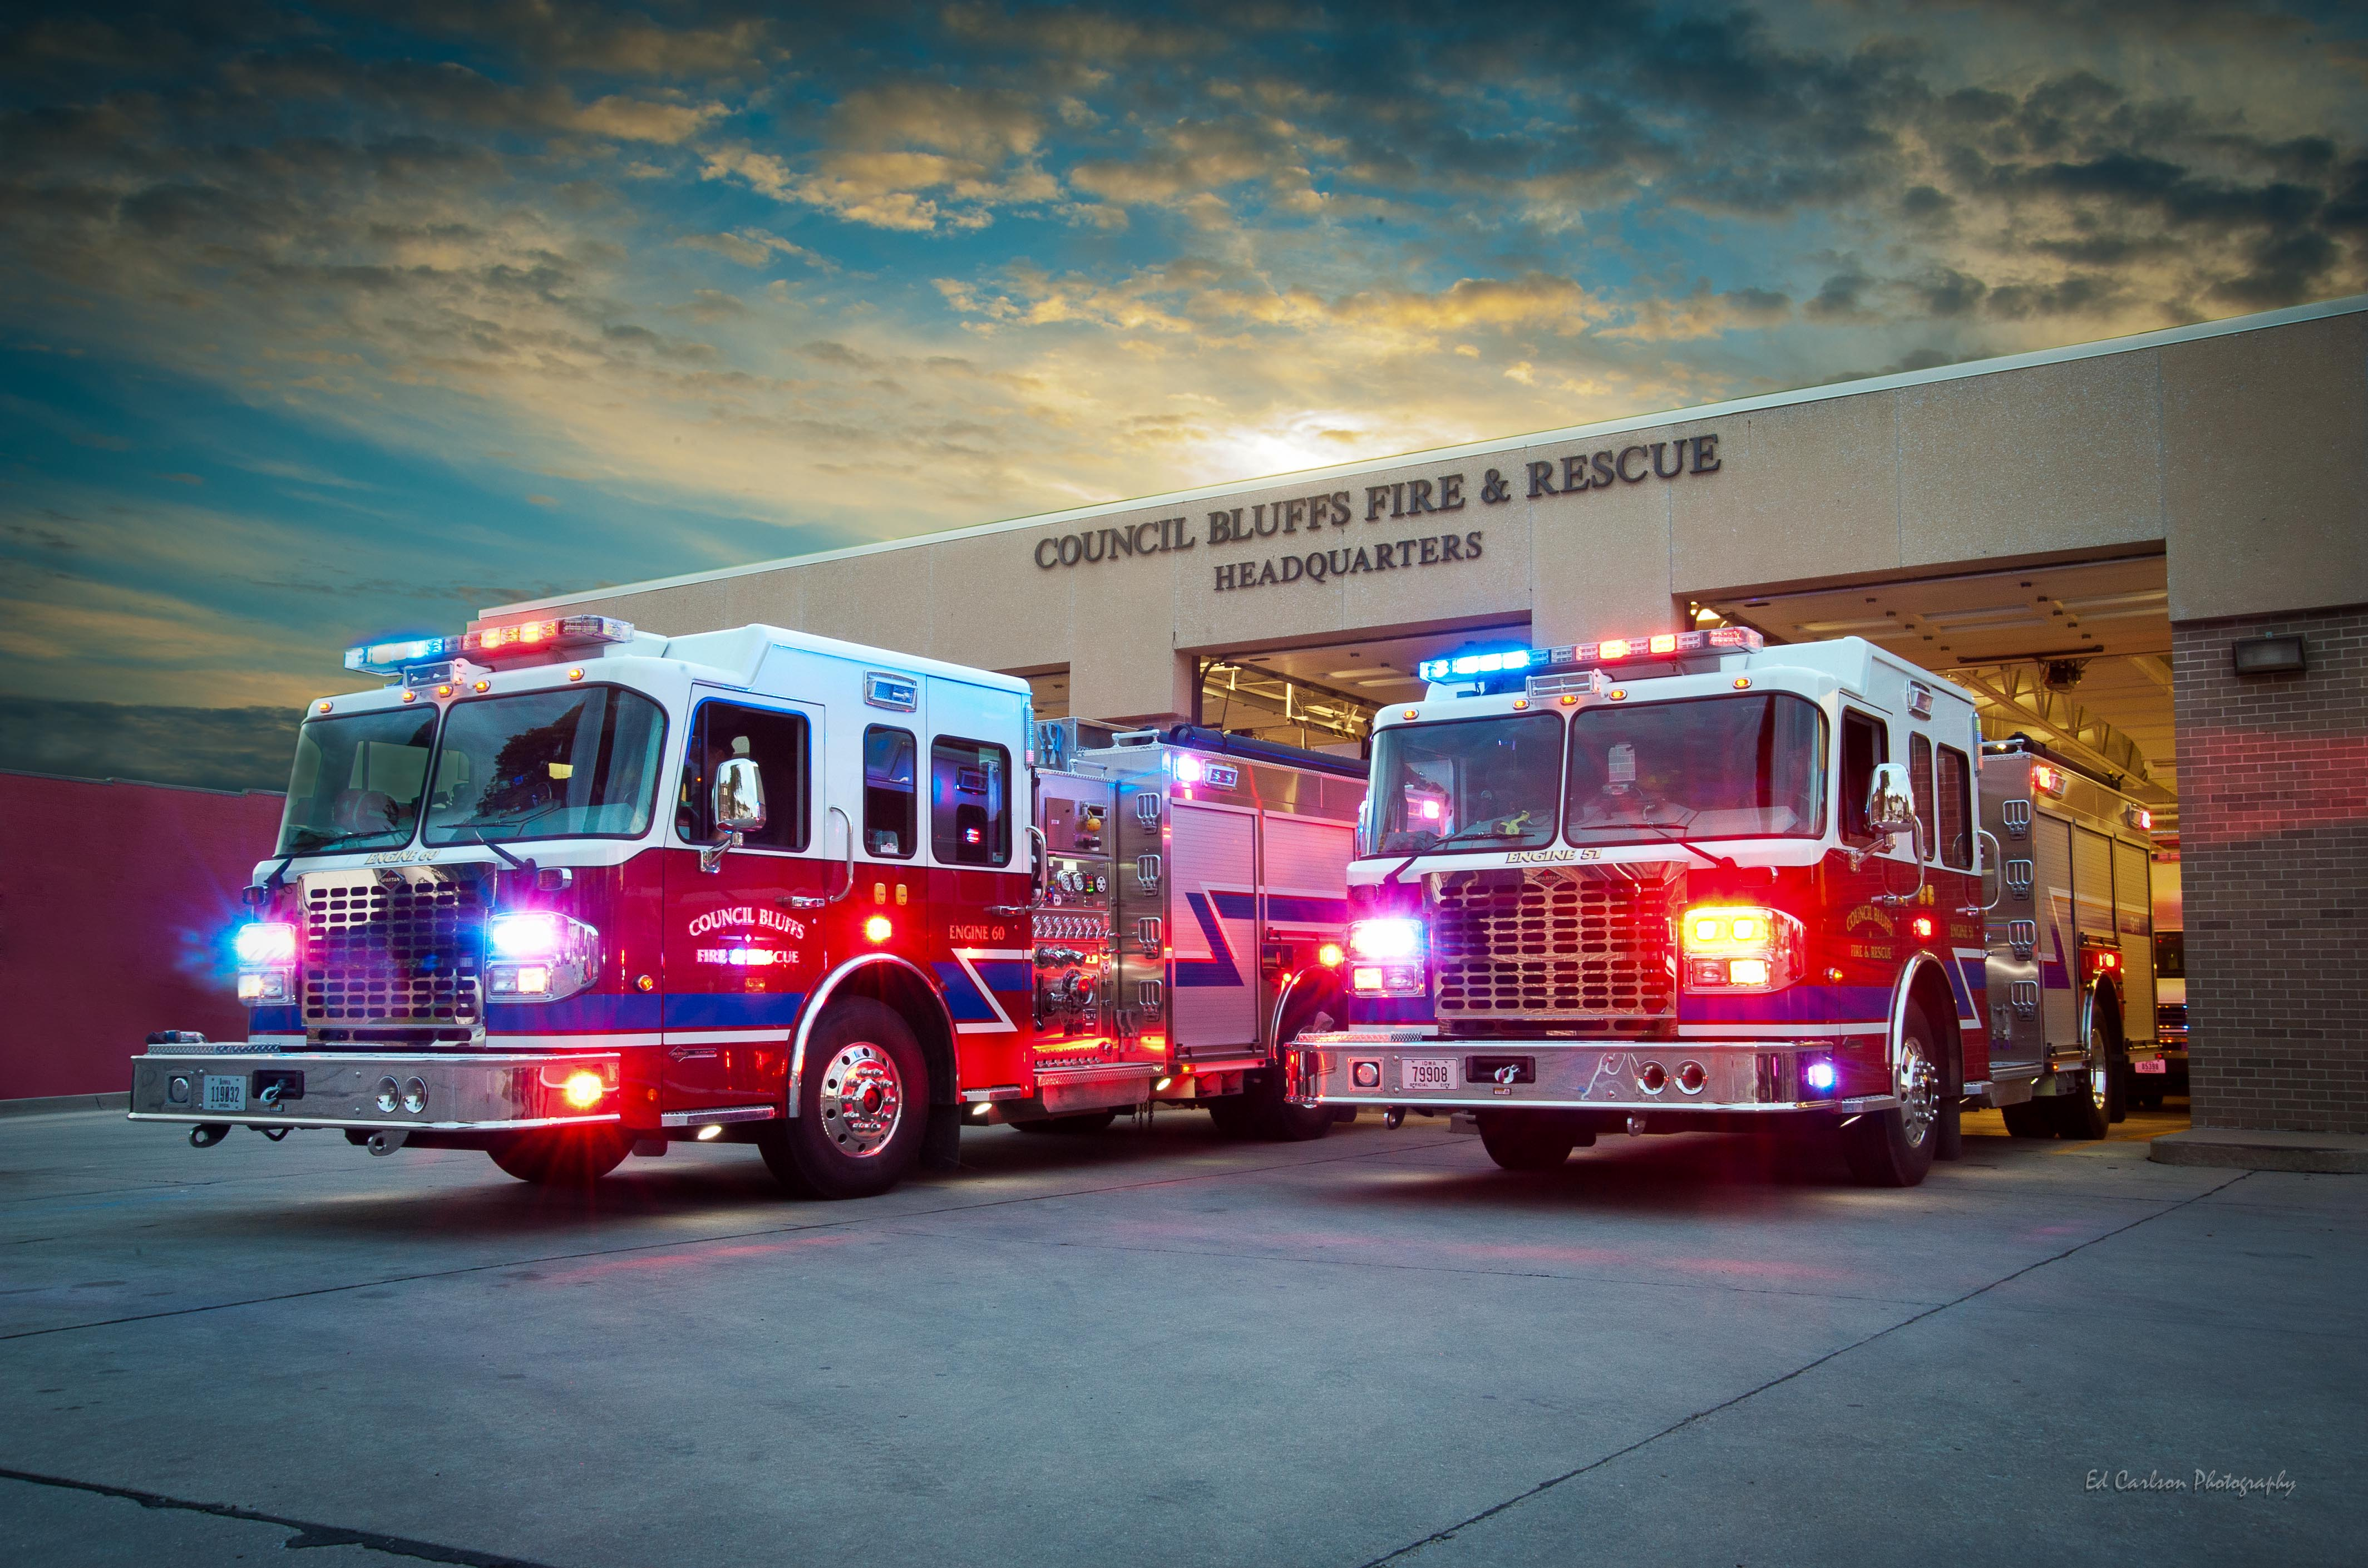 Council Bluffs Fire Department